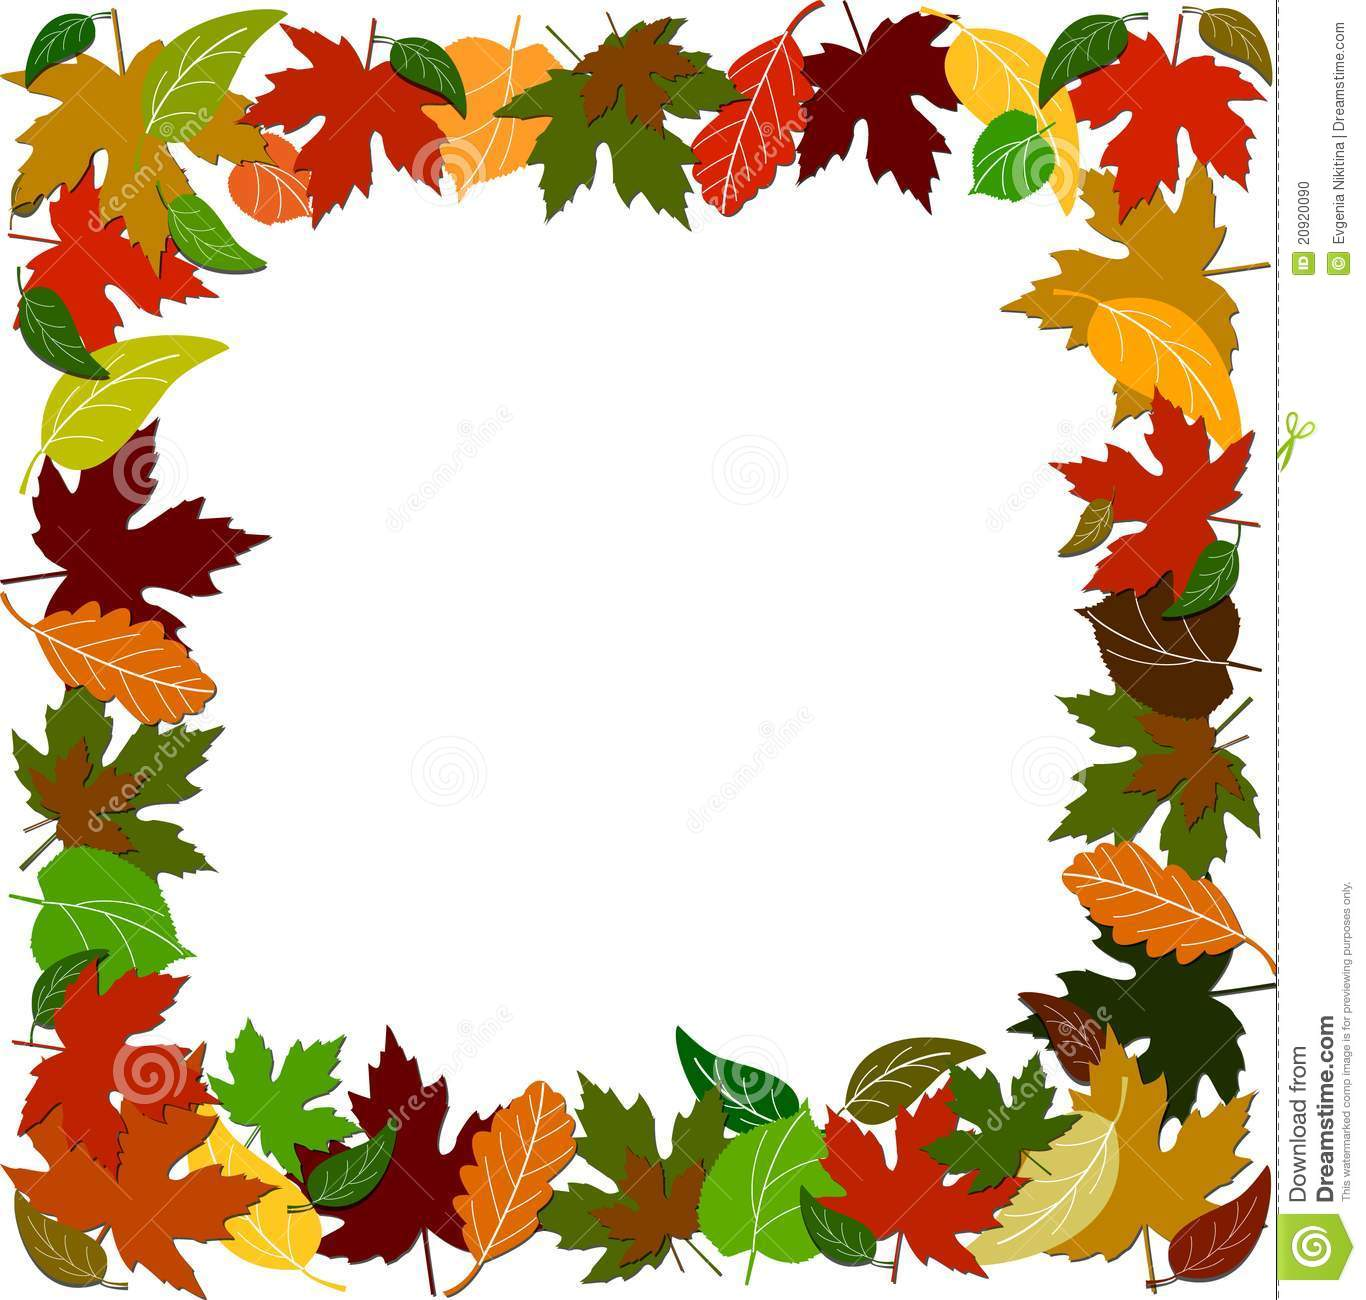 Maple Leaf Wallpaper For Fall Season Colorful Leaf Border Stock Vector Illustration Of Leafy